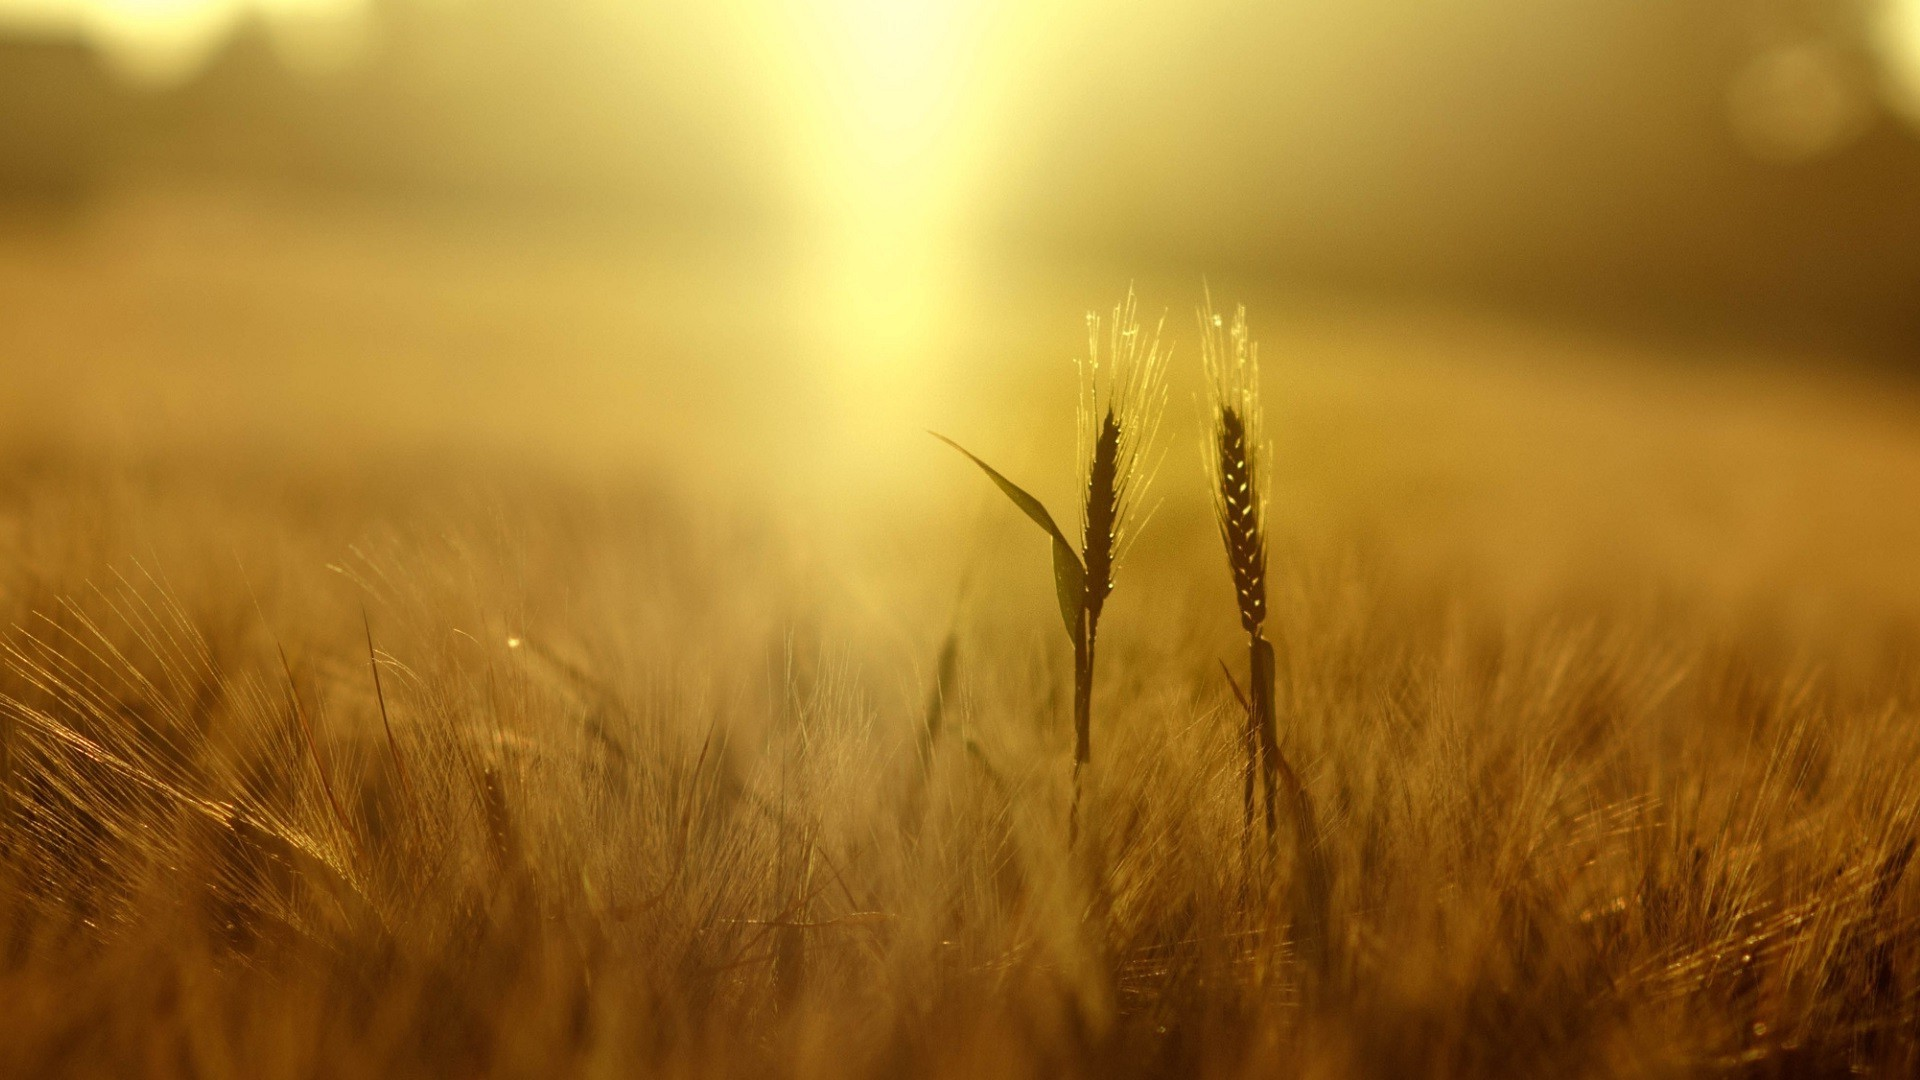 1920x1080 wheat, Plants, Nature, Field, Depth Of Field, Yellow, Spikelets, Sunlight  Wallpapers HD / Desktop and Mobile Backgrounds